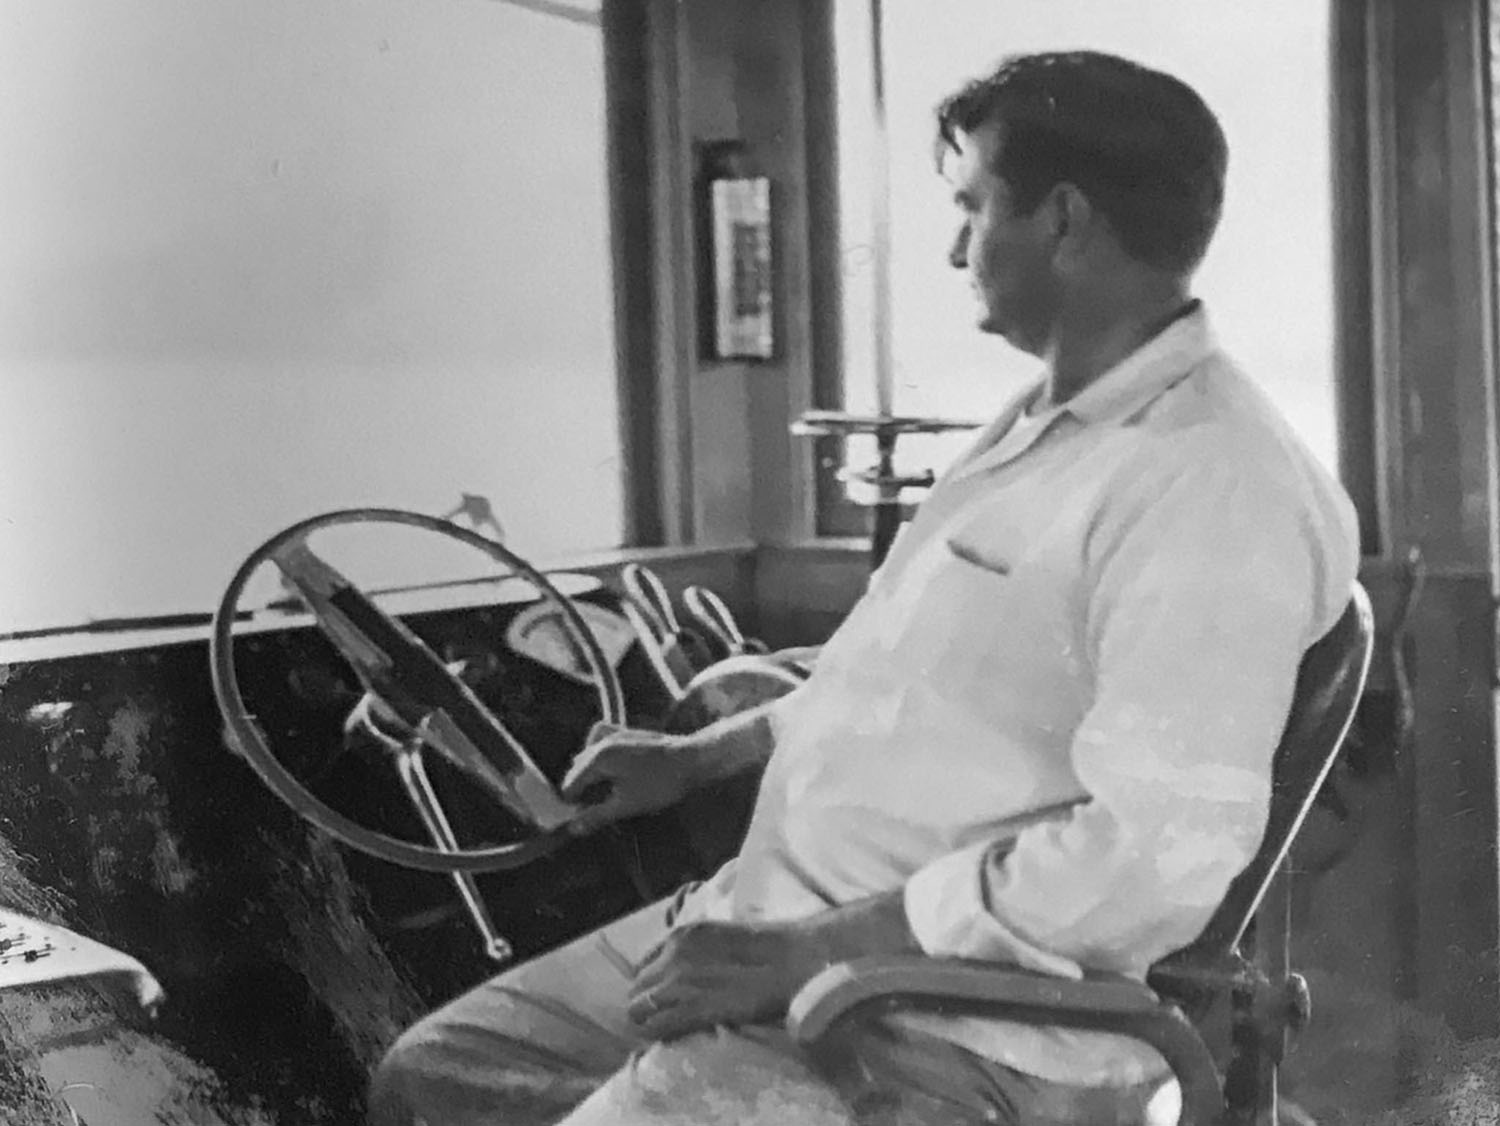 Ancel Burnett in the pilothouse of the Dan C. (Photo courtesy of Bill Burnett)